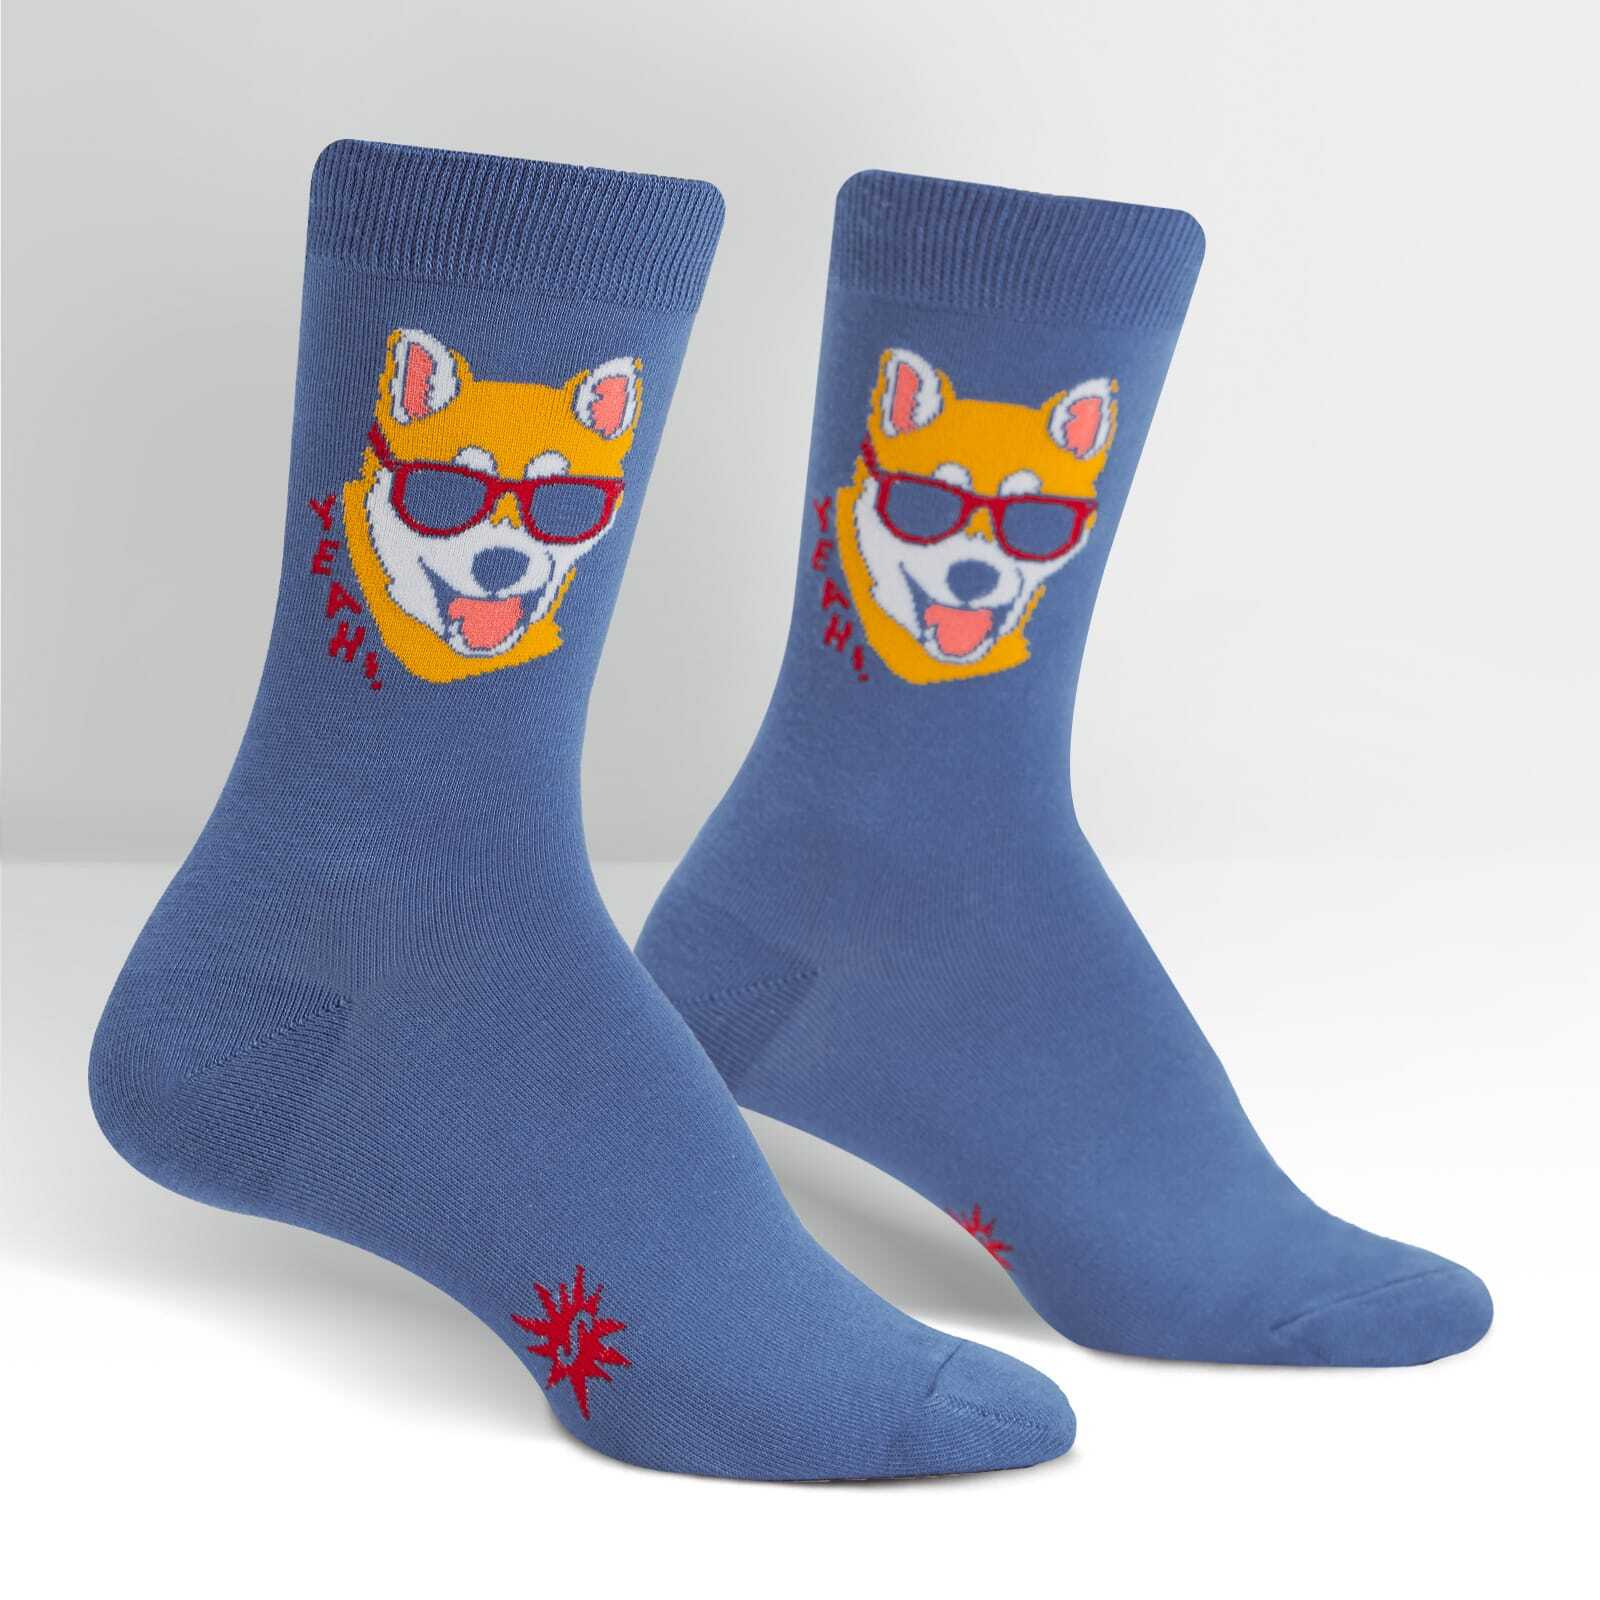 Women's Hipster Dog - Funny Shiba Inu Wearing Sunglasses Blue Women's Crew Socks - Sock It to Me in Blue